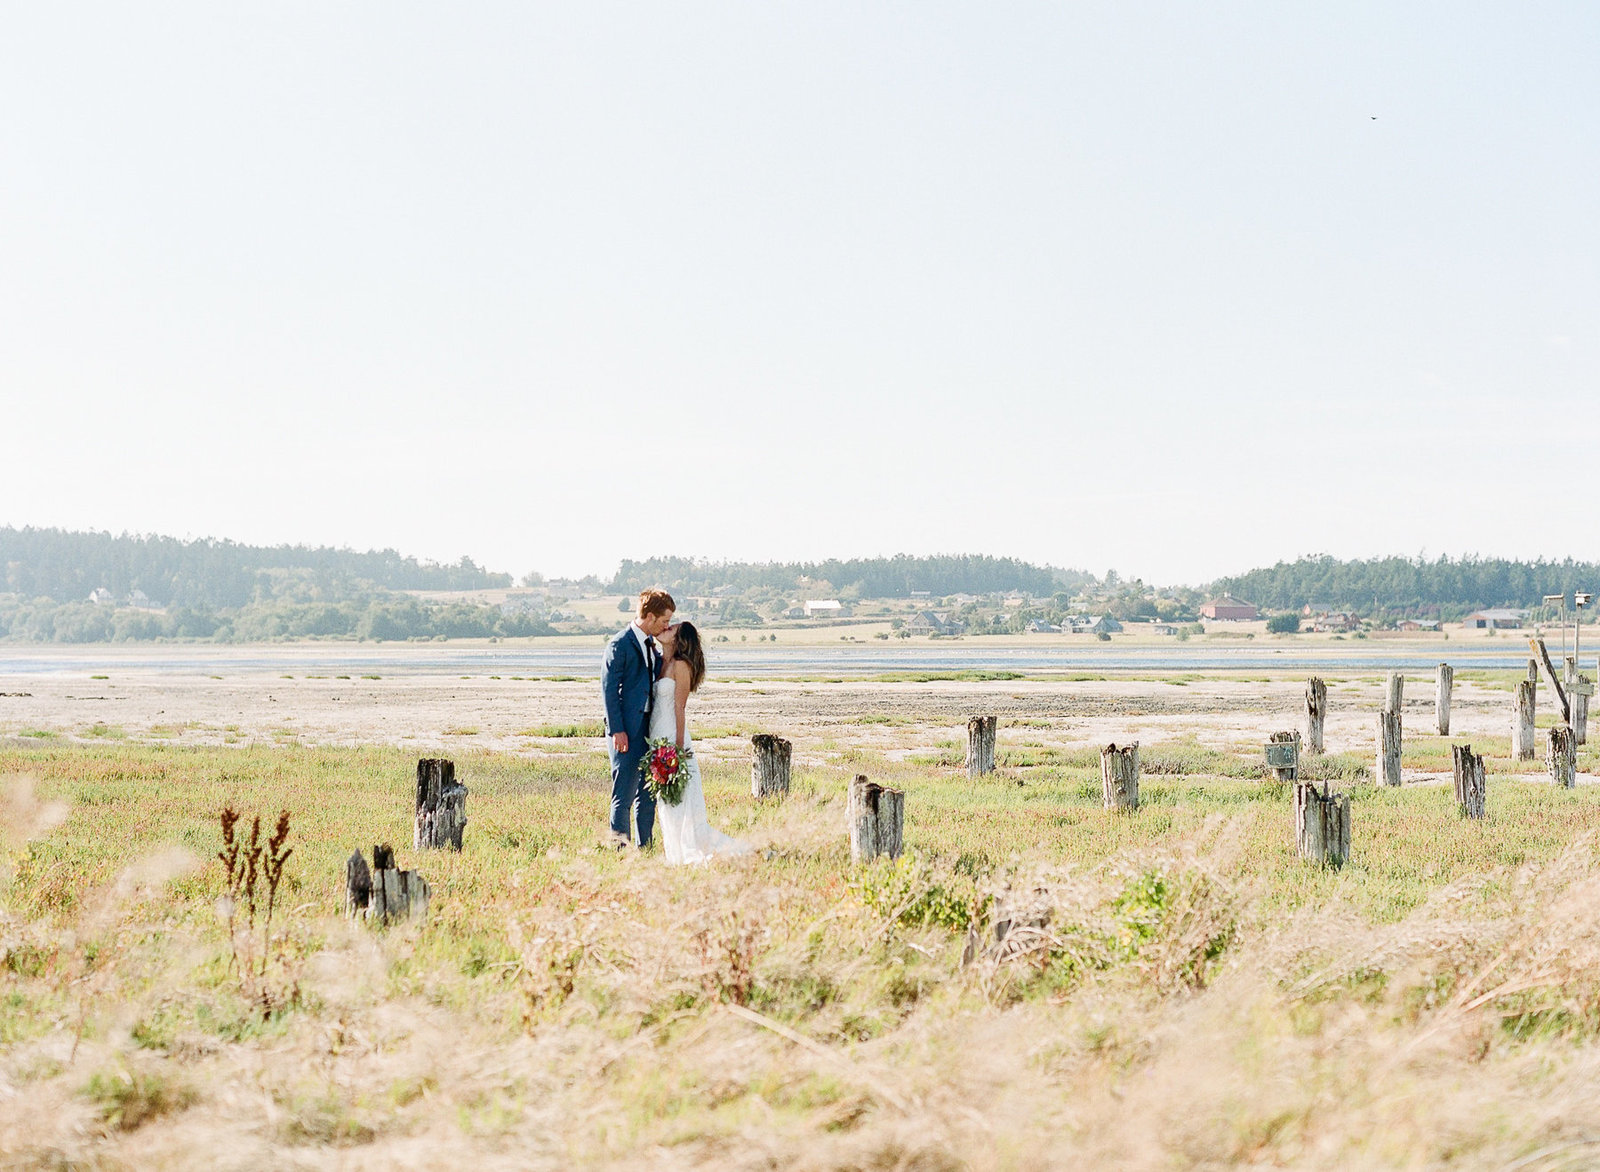 128-000094790005-crockett-farm-whidbey-island-wedding-michaela-joy-photography